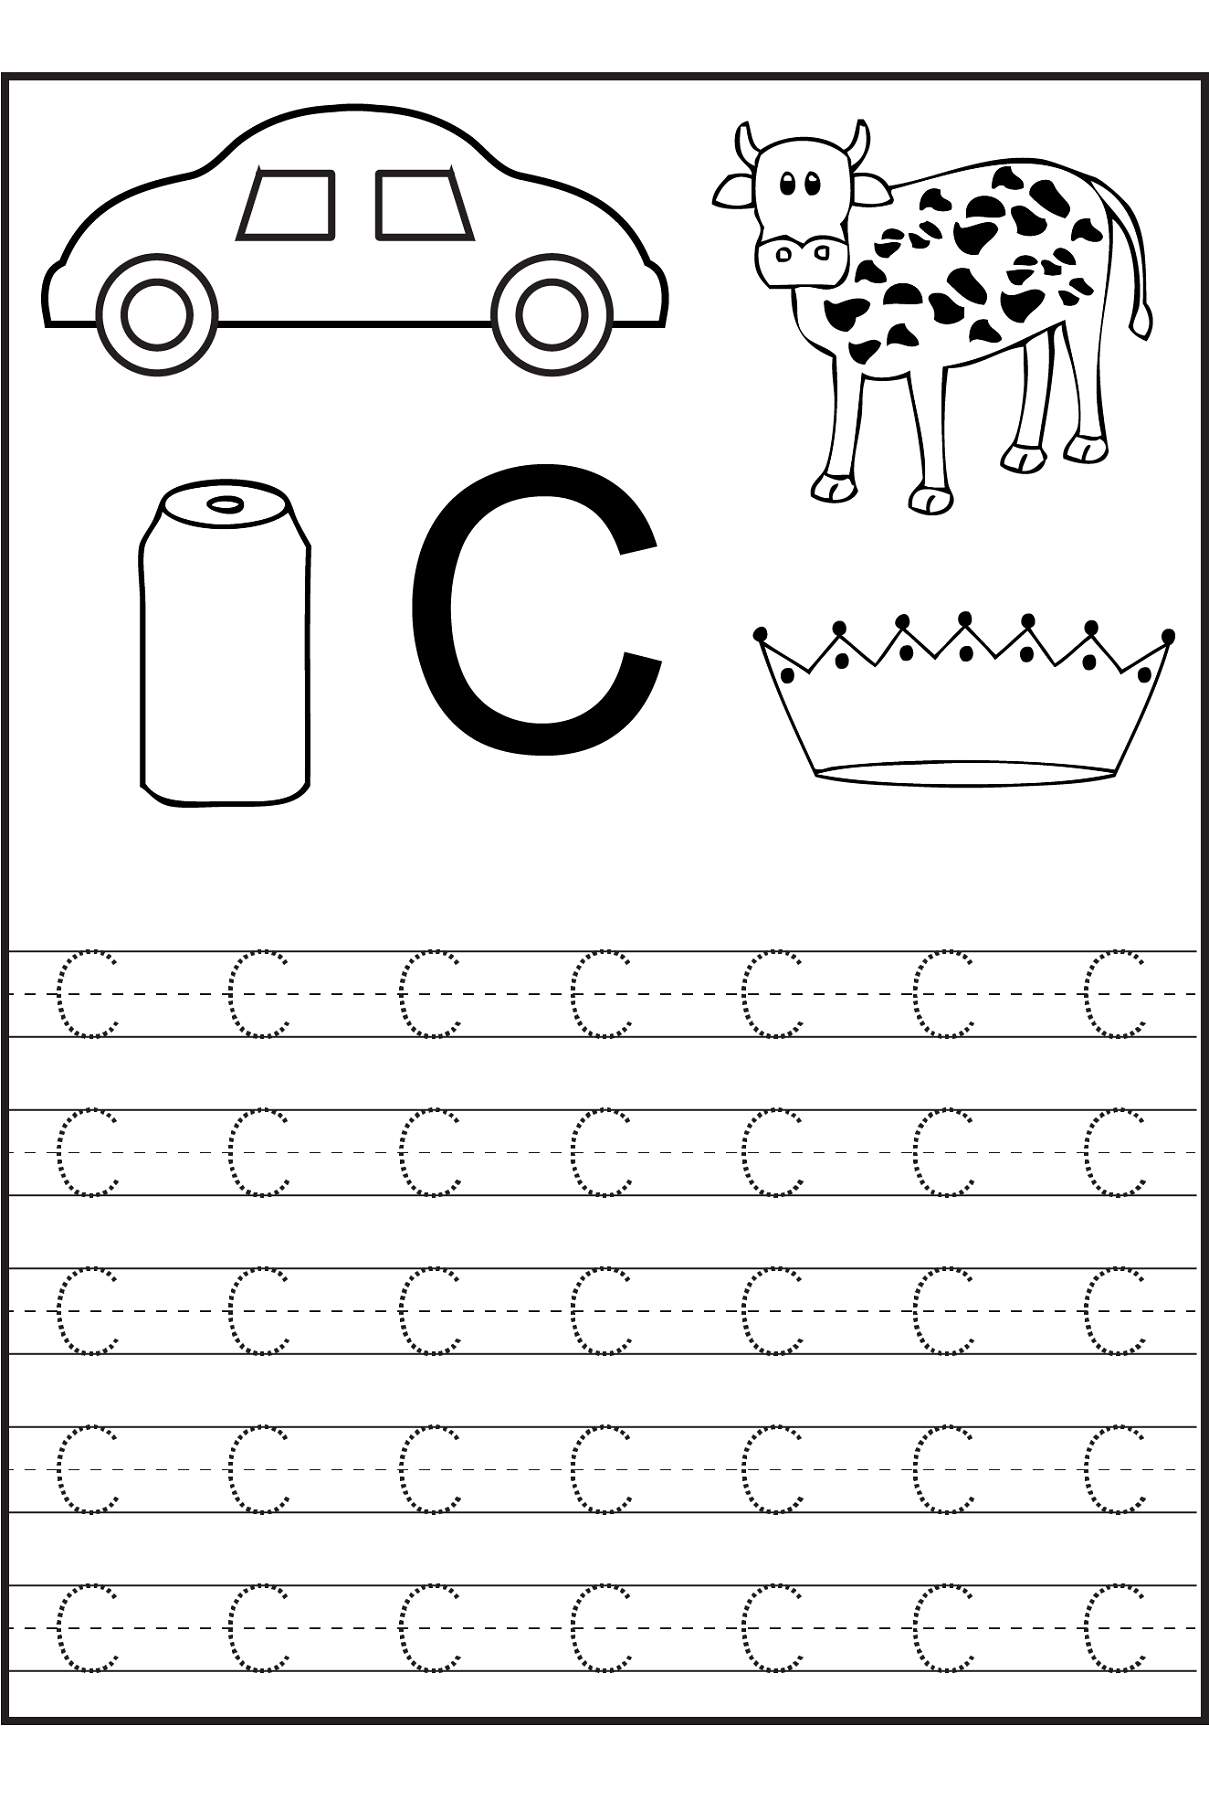 Trace The Letter C Worksheets | Alphabet And Numbers Learning | Letter C Printable Worksheets